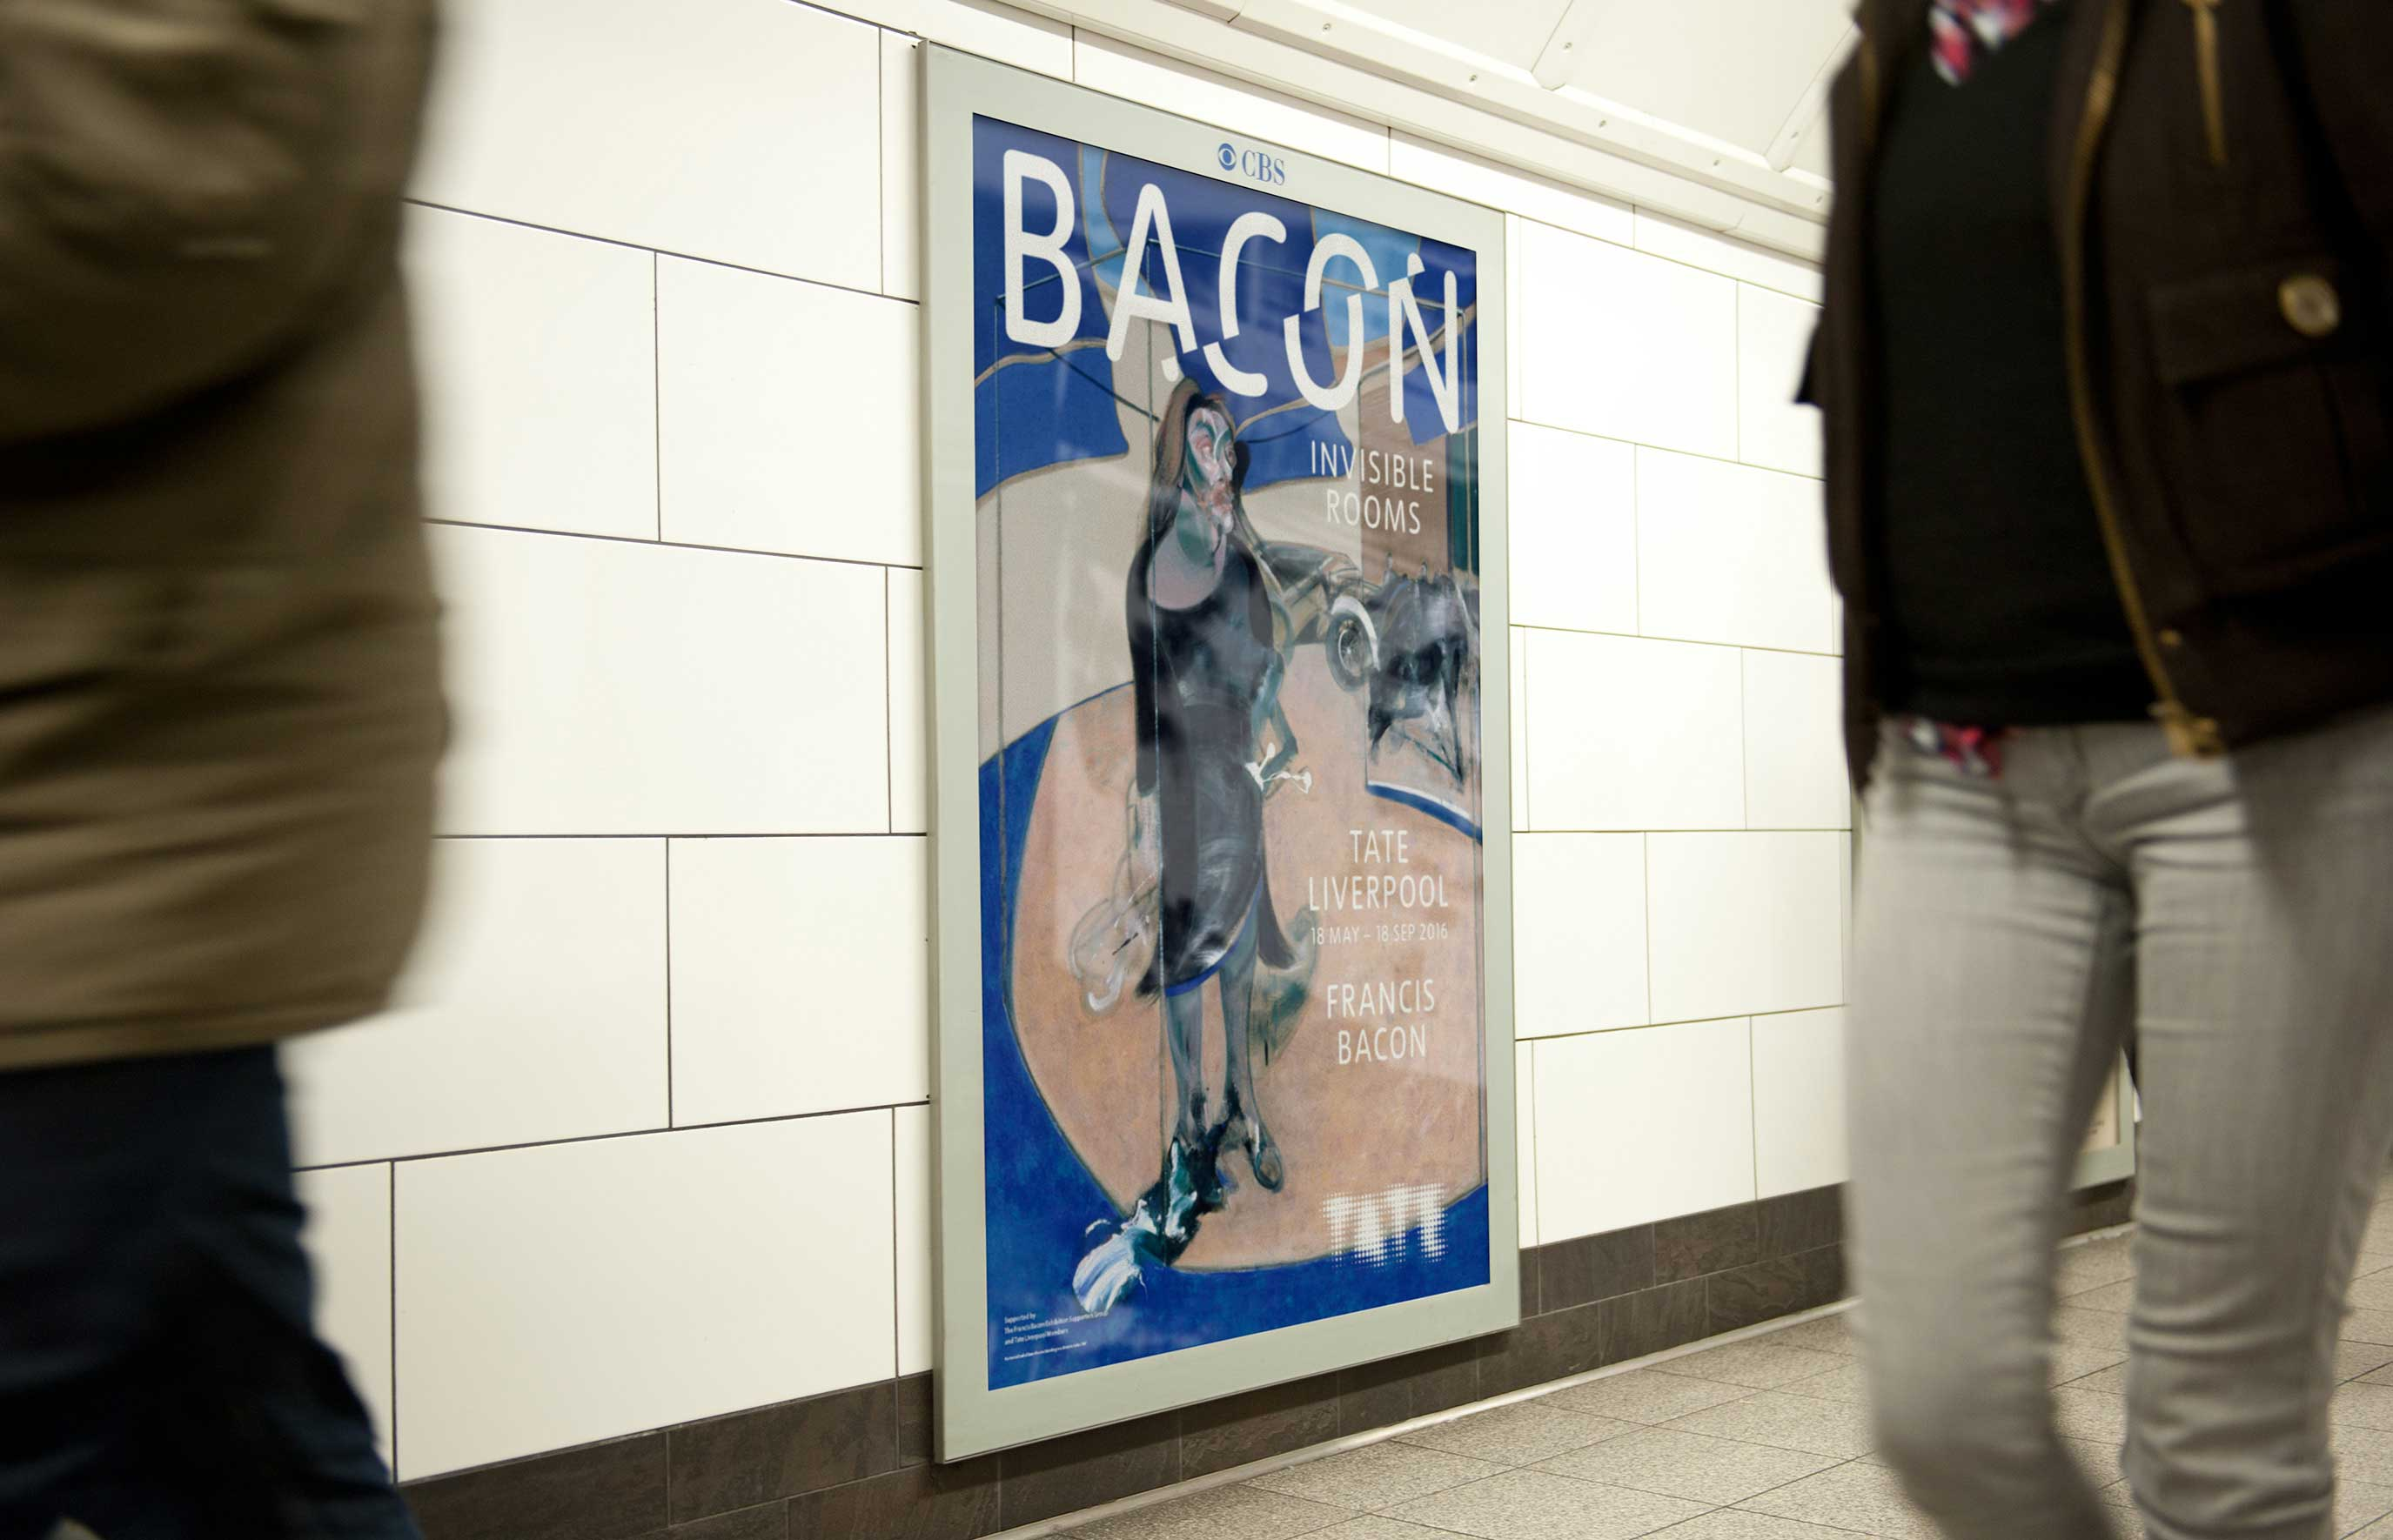 north_tate_028_poster_bacon